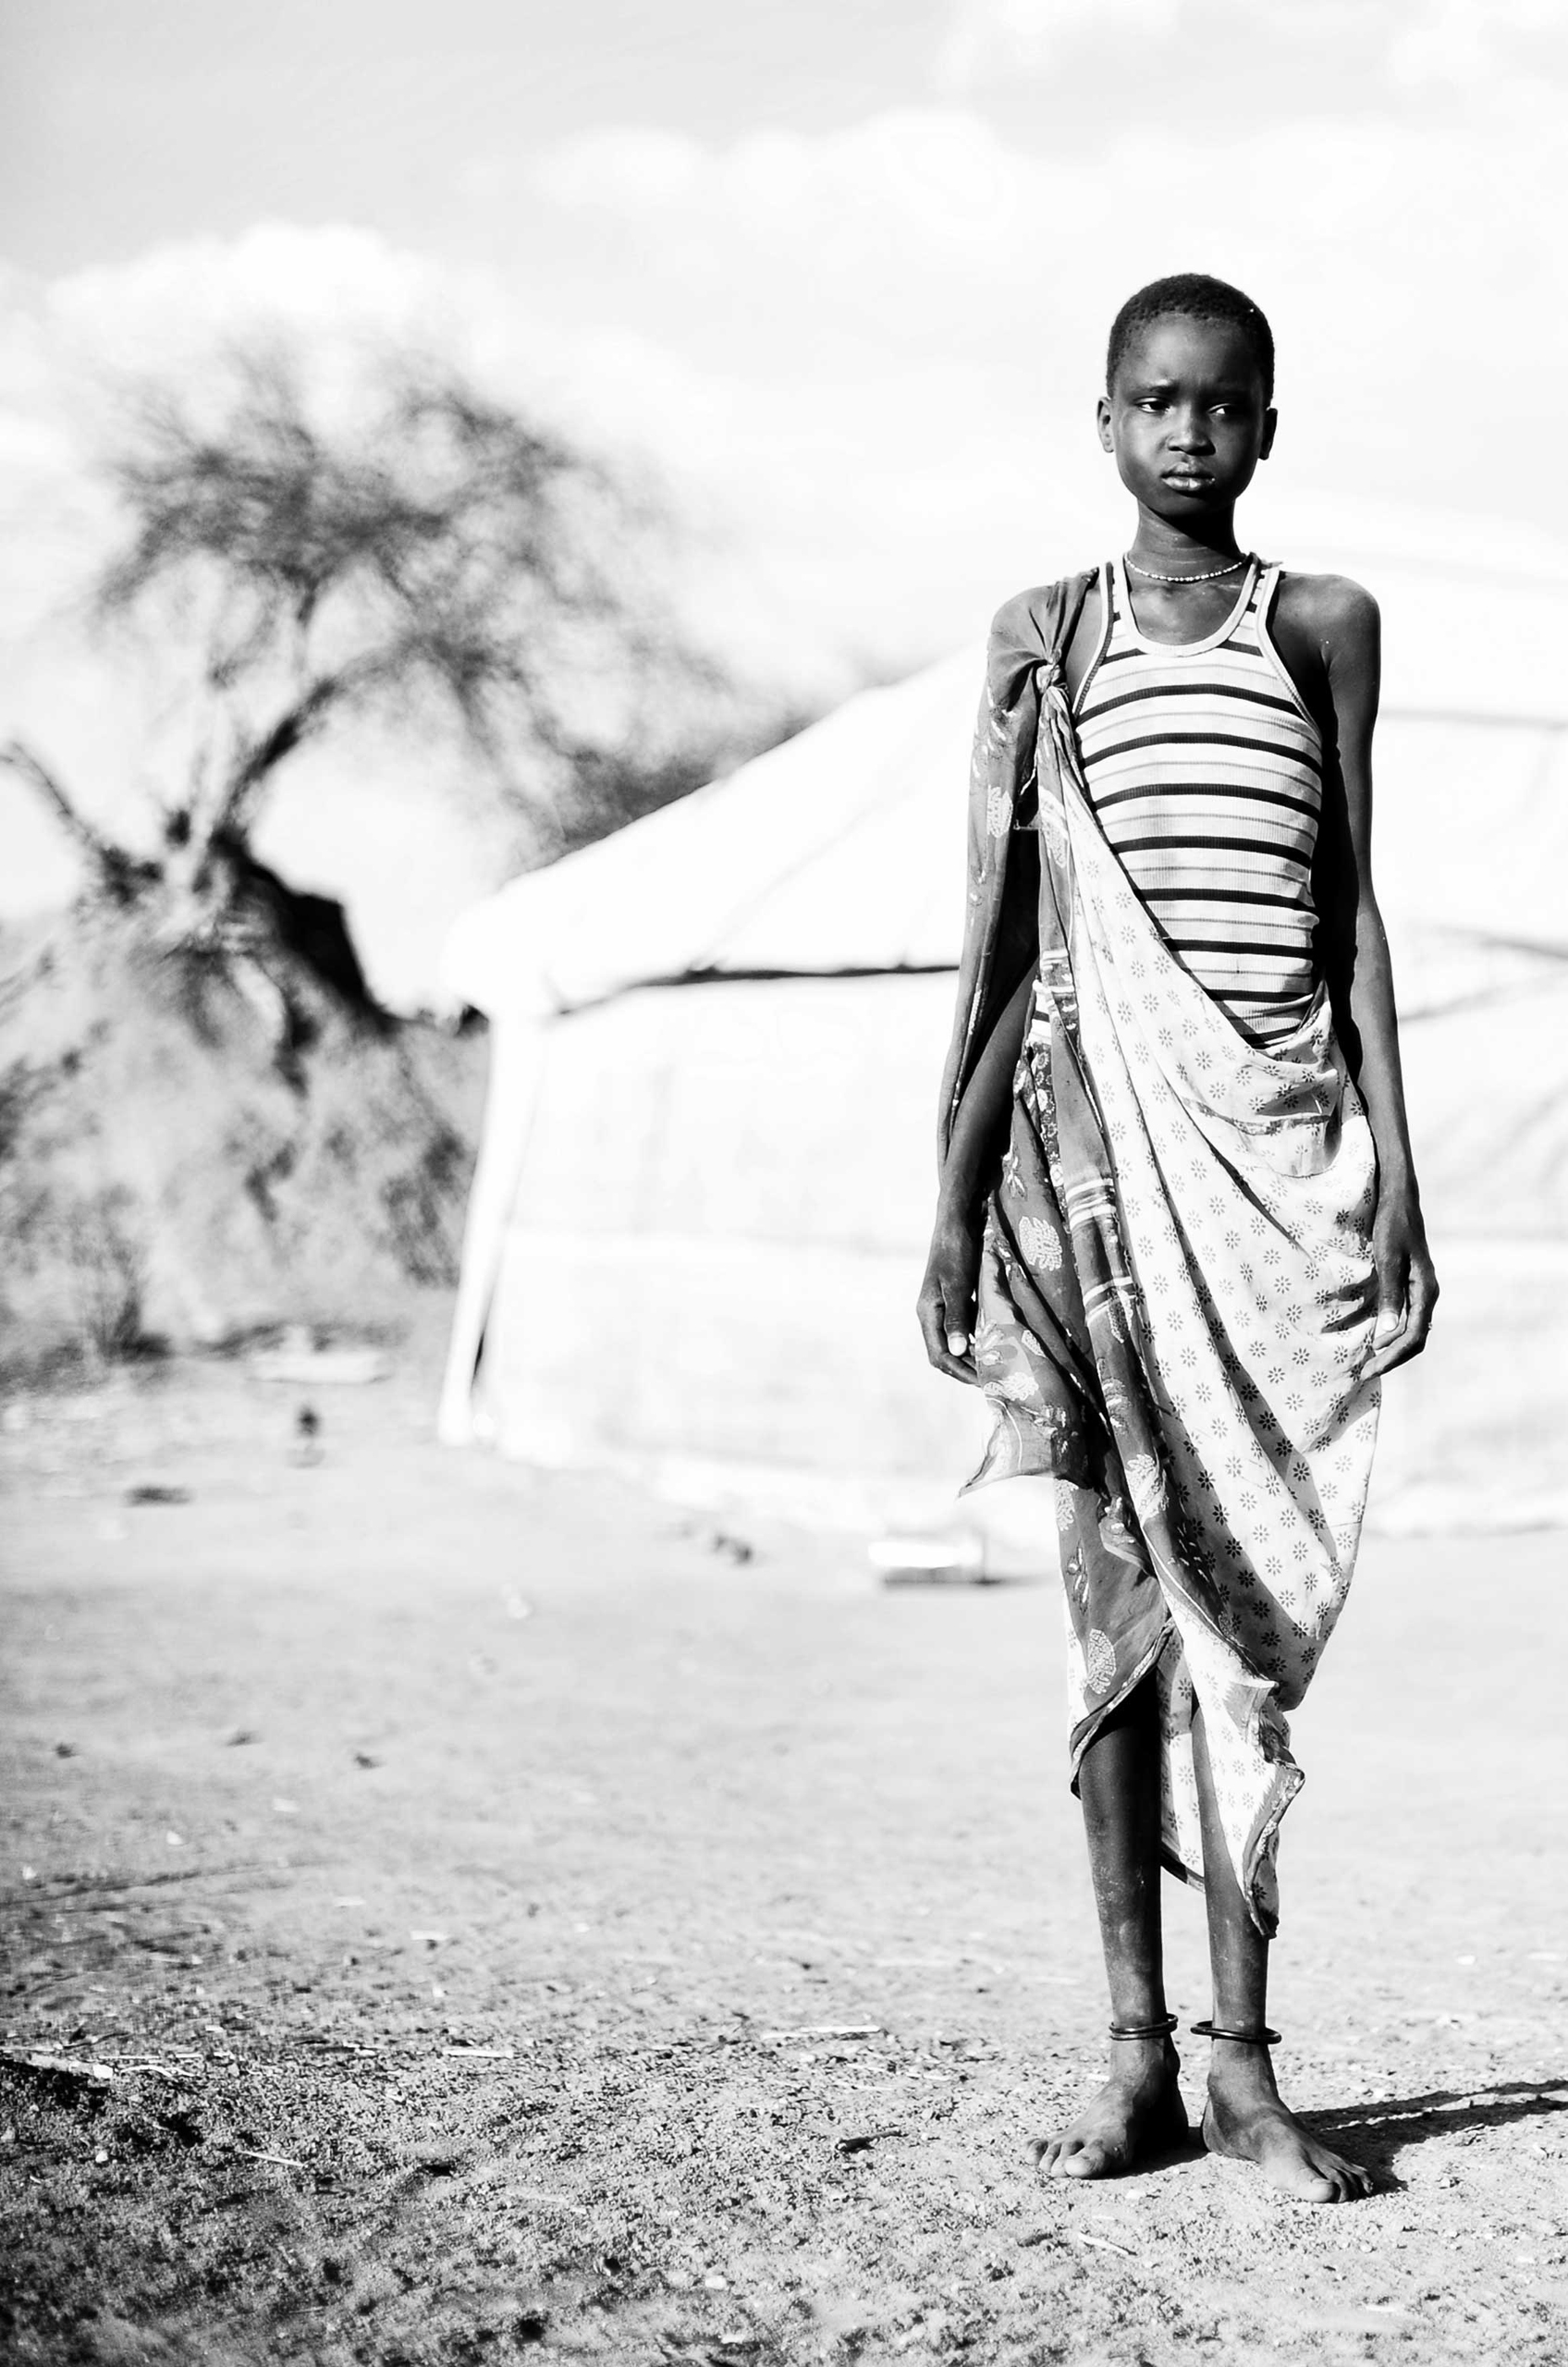 Mingkamann refugee camp, Lakes state, South Sudan: Faith, 16, fled with her family from the Upper Nile. This evening she will attend a party with the young boys in the village and  hopes to choose a mate.